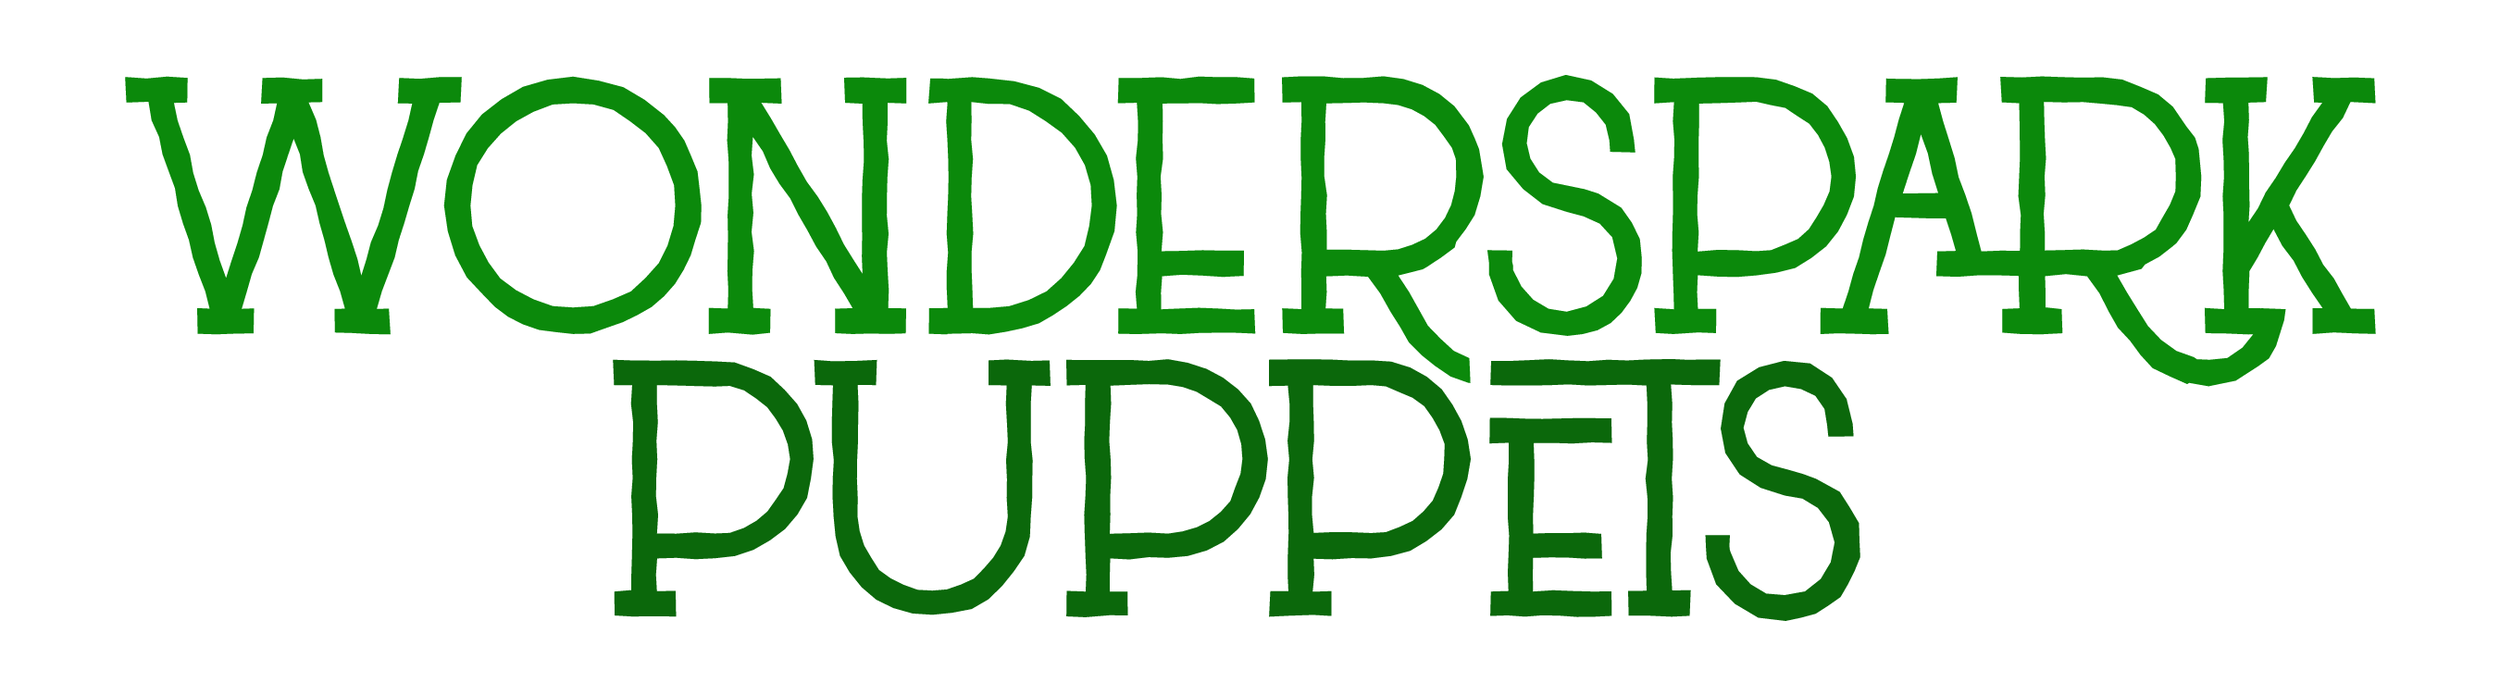 WonderSpark_Logo_wordmark_green.png